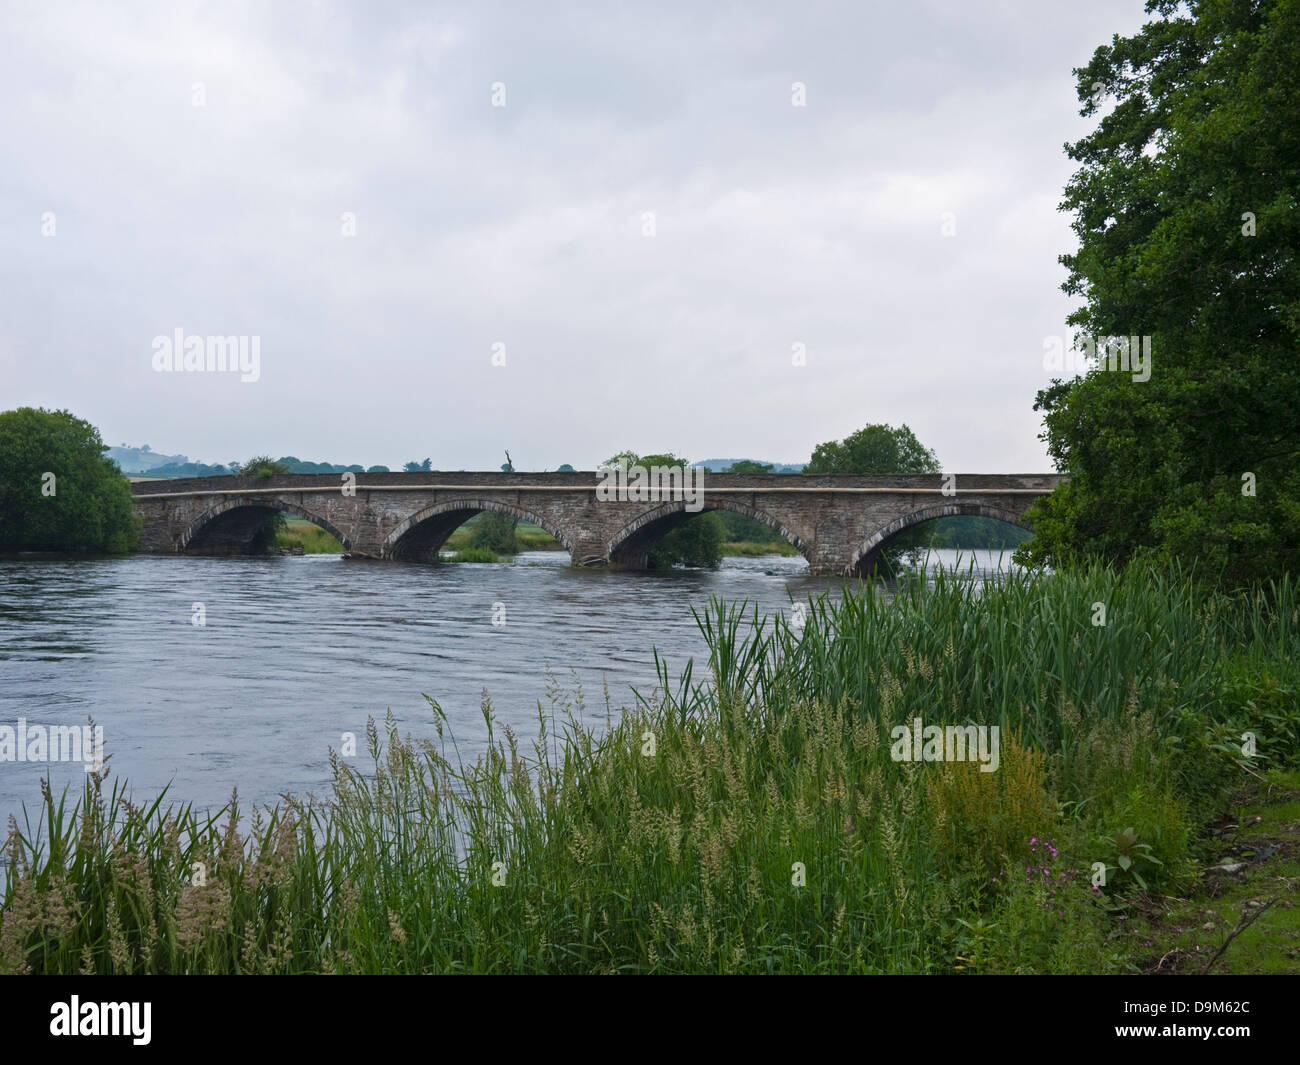 Pont Corwen, carrying the A5 road over the River Dee / Afon Dyfrdwy outside the Denbighshire town of Corwen, North - Stock Image